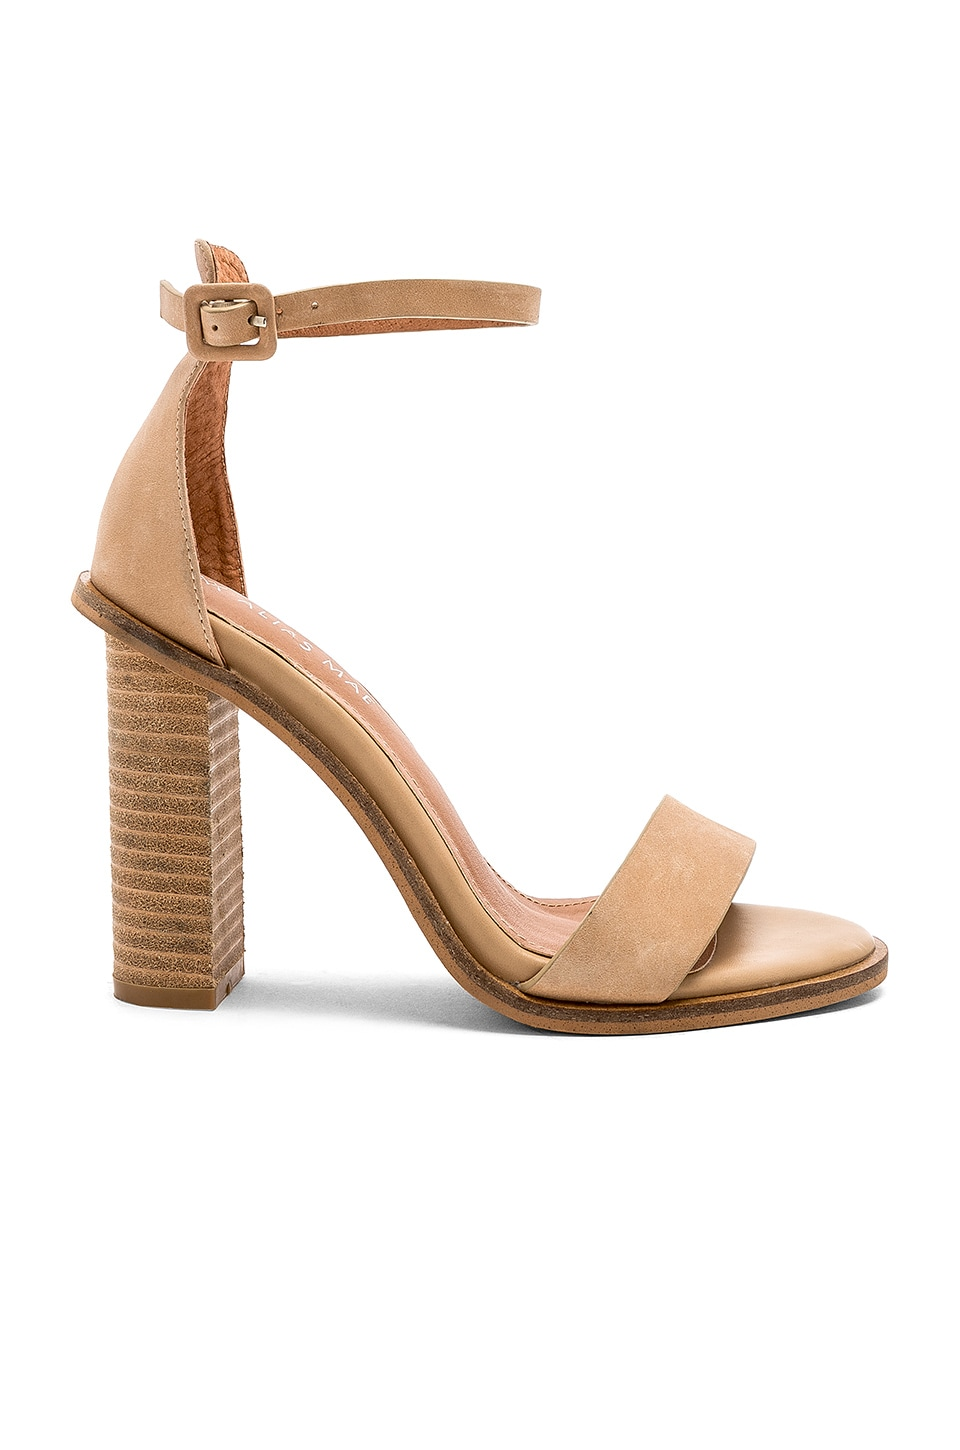 Alias Mae Addax Heel in Natural Leather